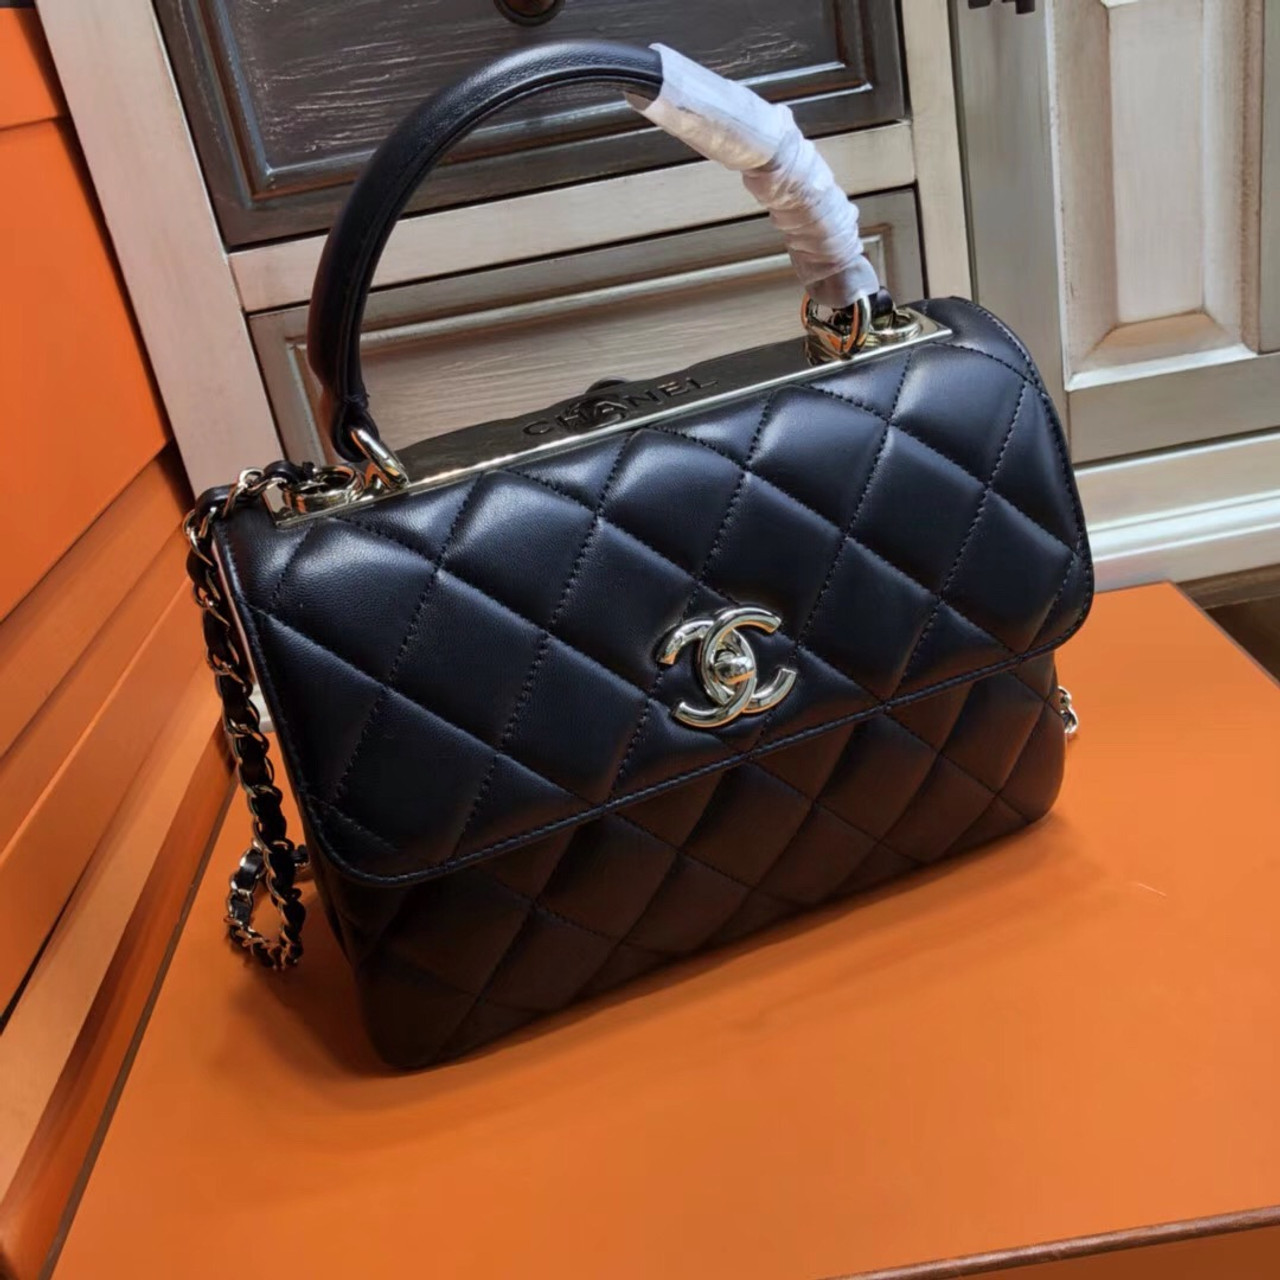 606119bec84121 Chanel Small Trendy CC Top Handle Bag Quilted Lambskin - Bella Vita Moda